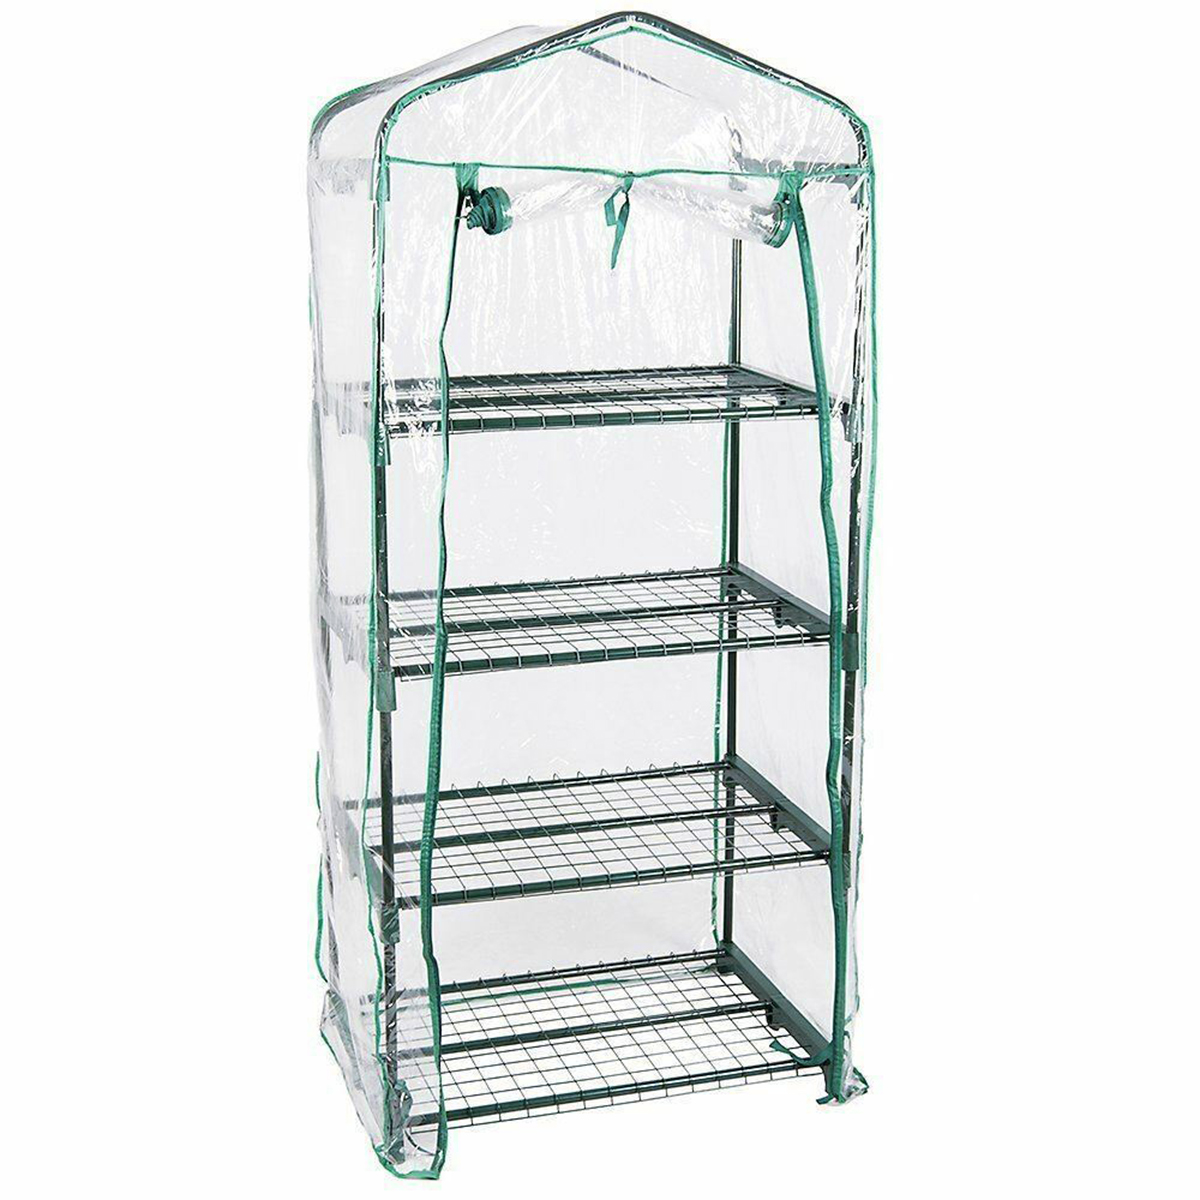 Mini Greenhouse Cover Clear PVC Outdoor Gardening Tier Plant Growing Green House